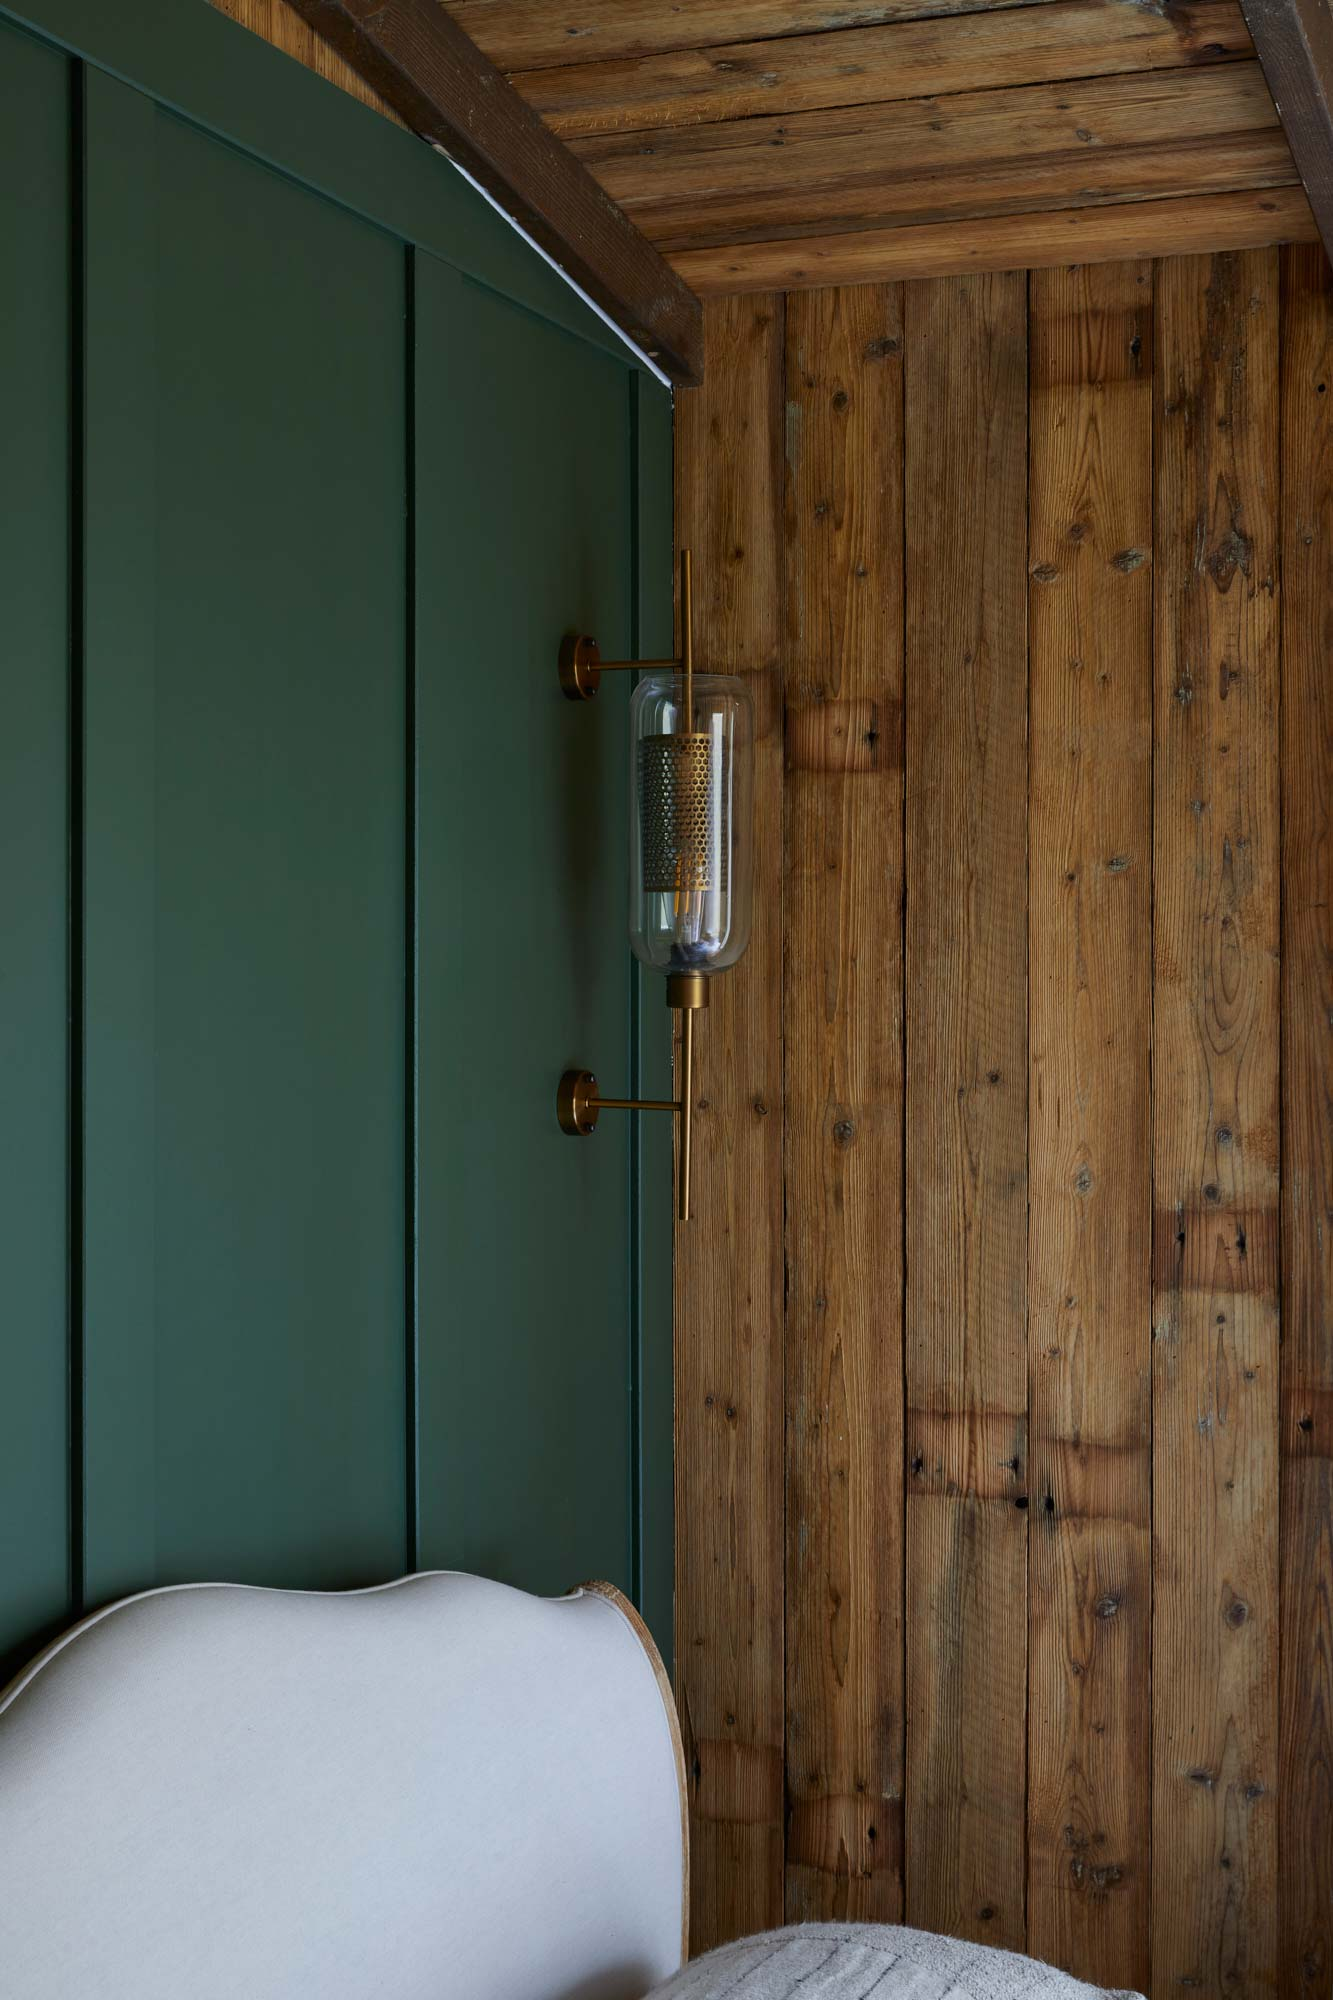 Rustic wall cladding in treehouse bedroom